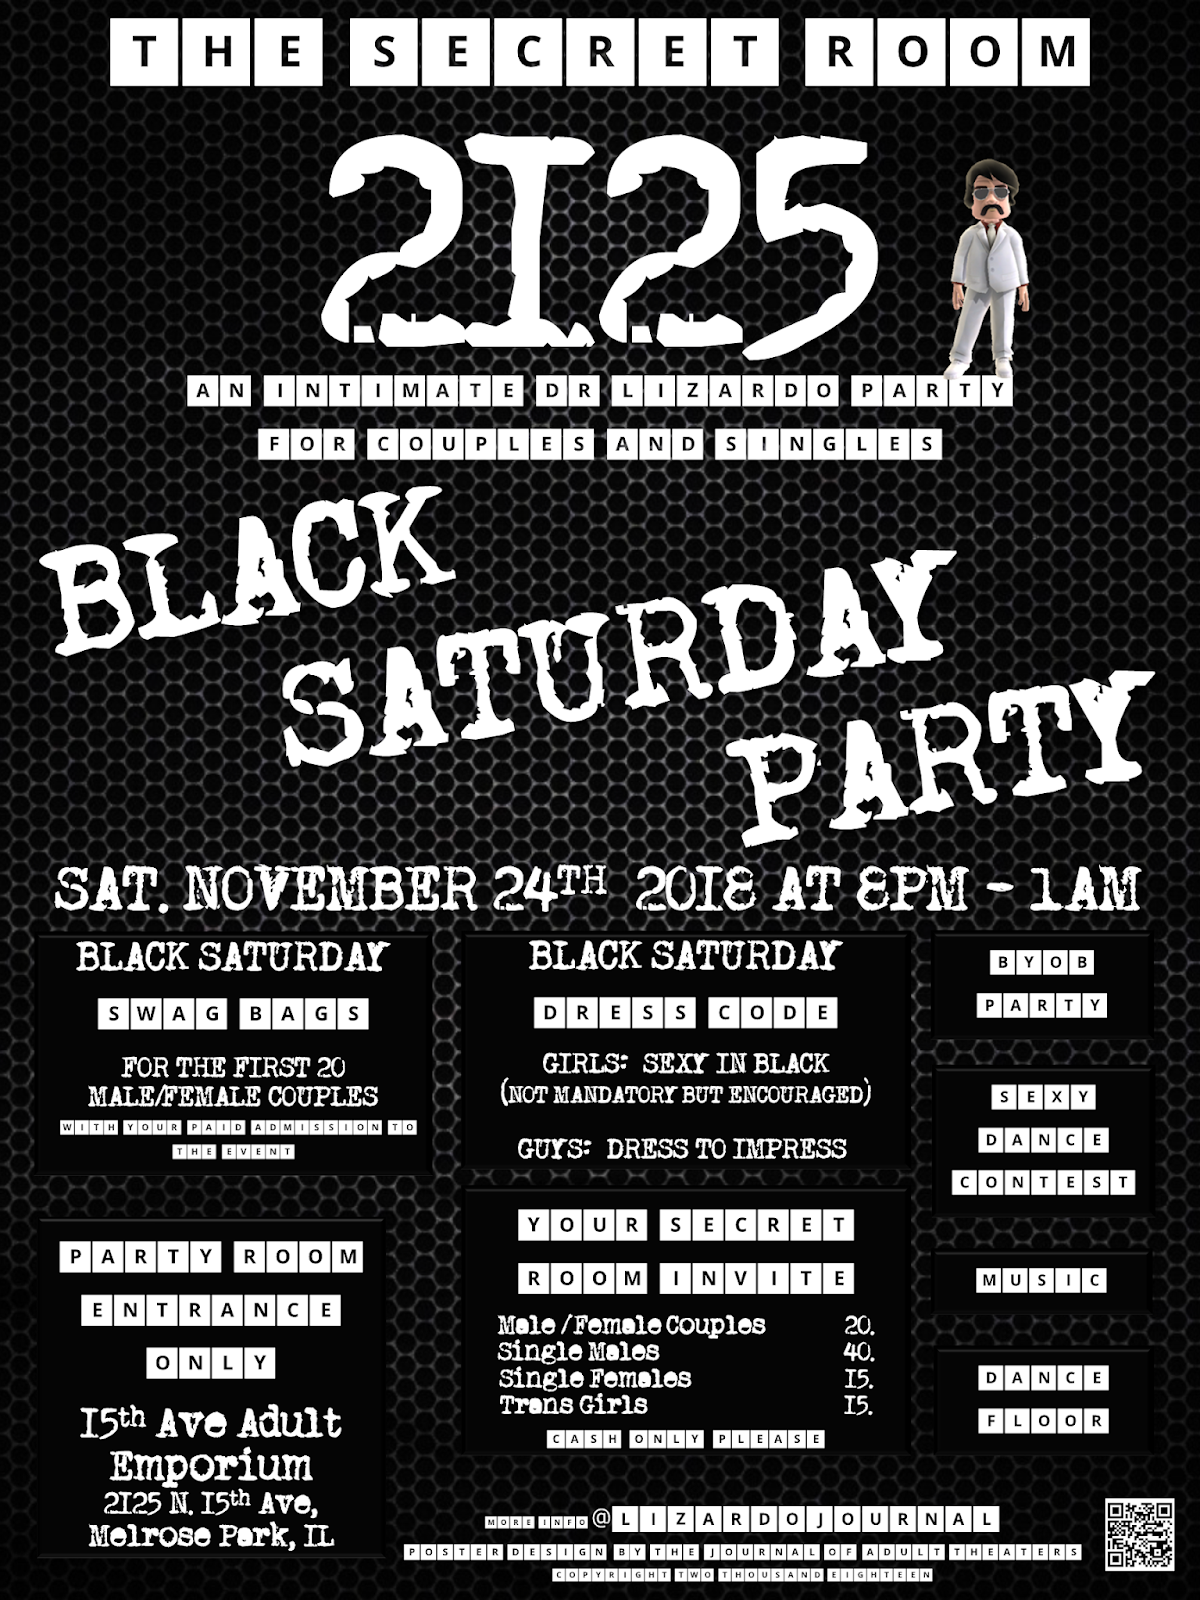 The Secret Room 2125: Black Saturday Party at 15th Ave. Adult Theater Party Room in Chicago!